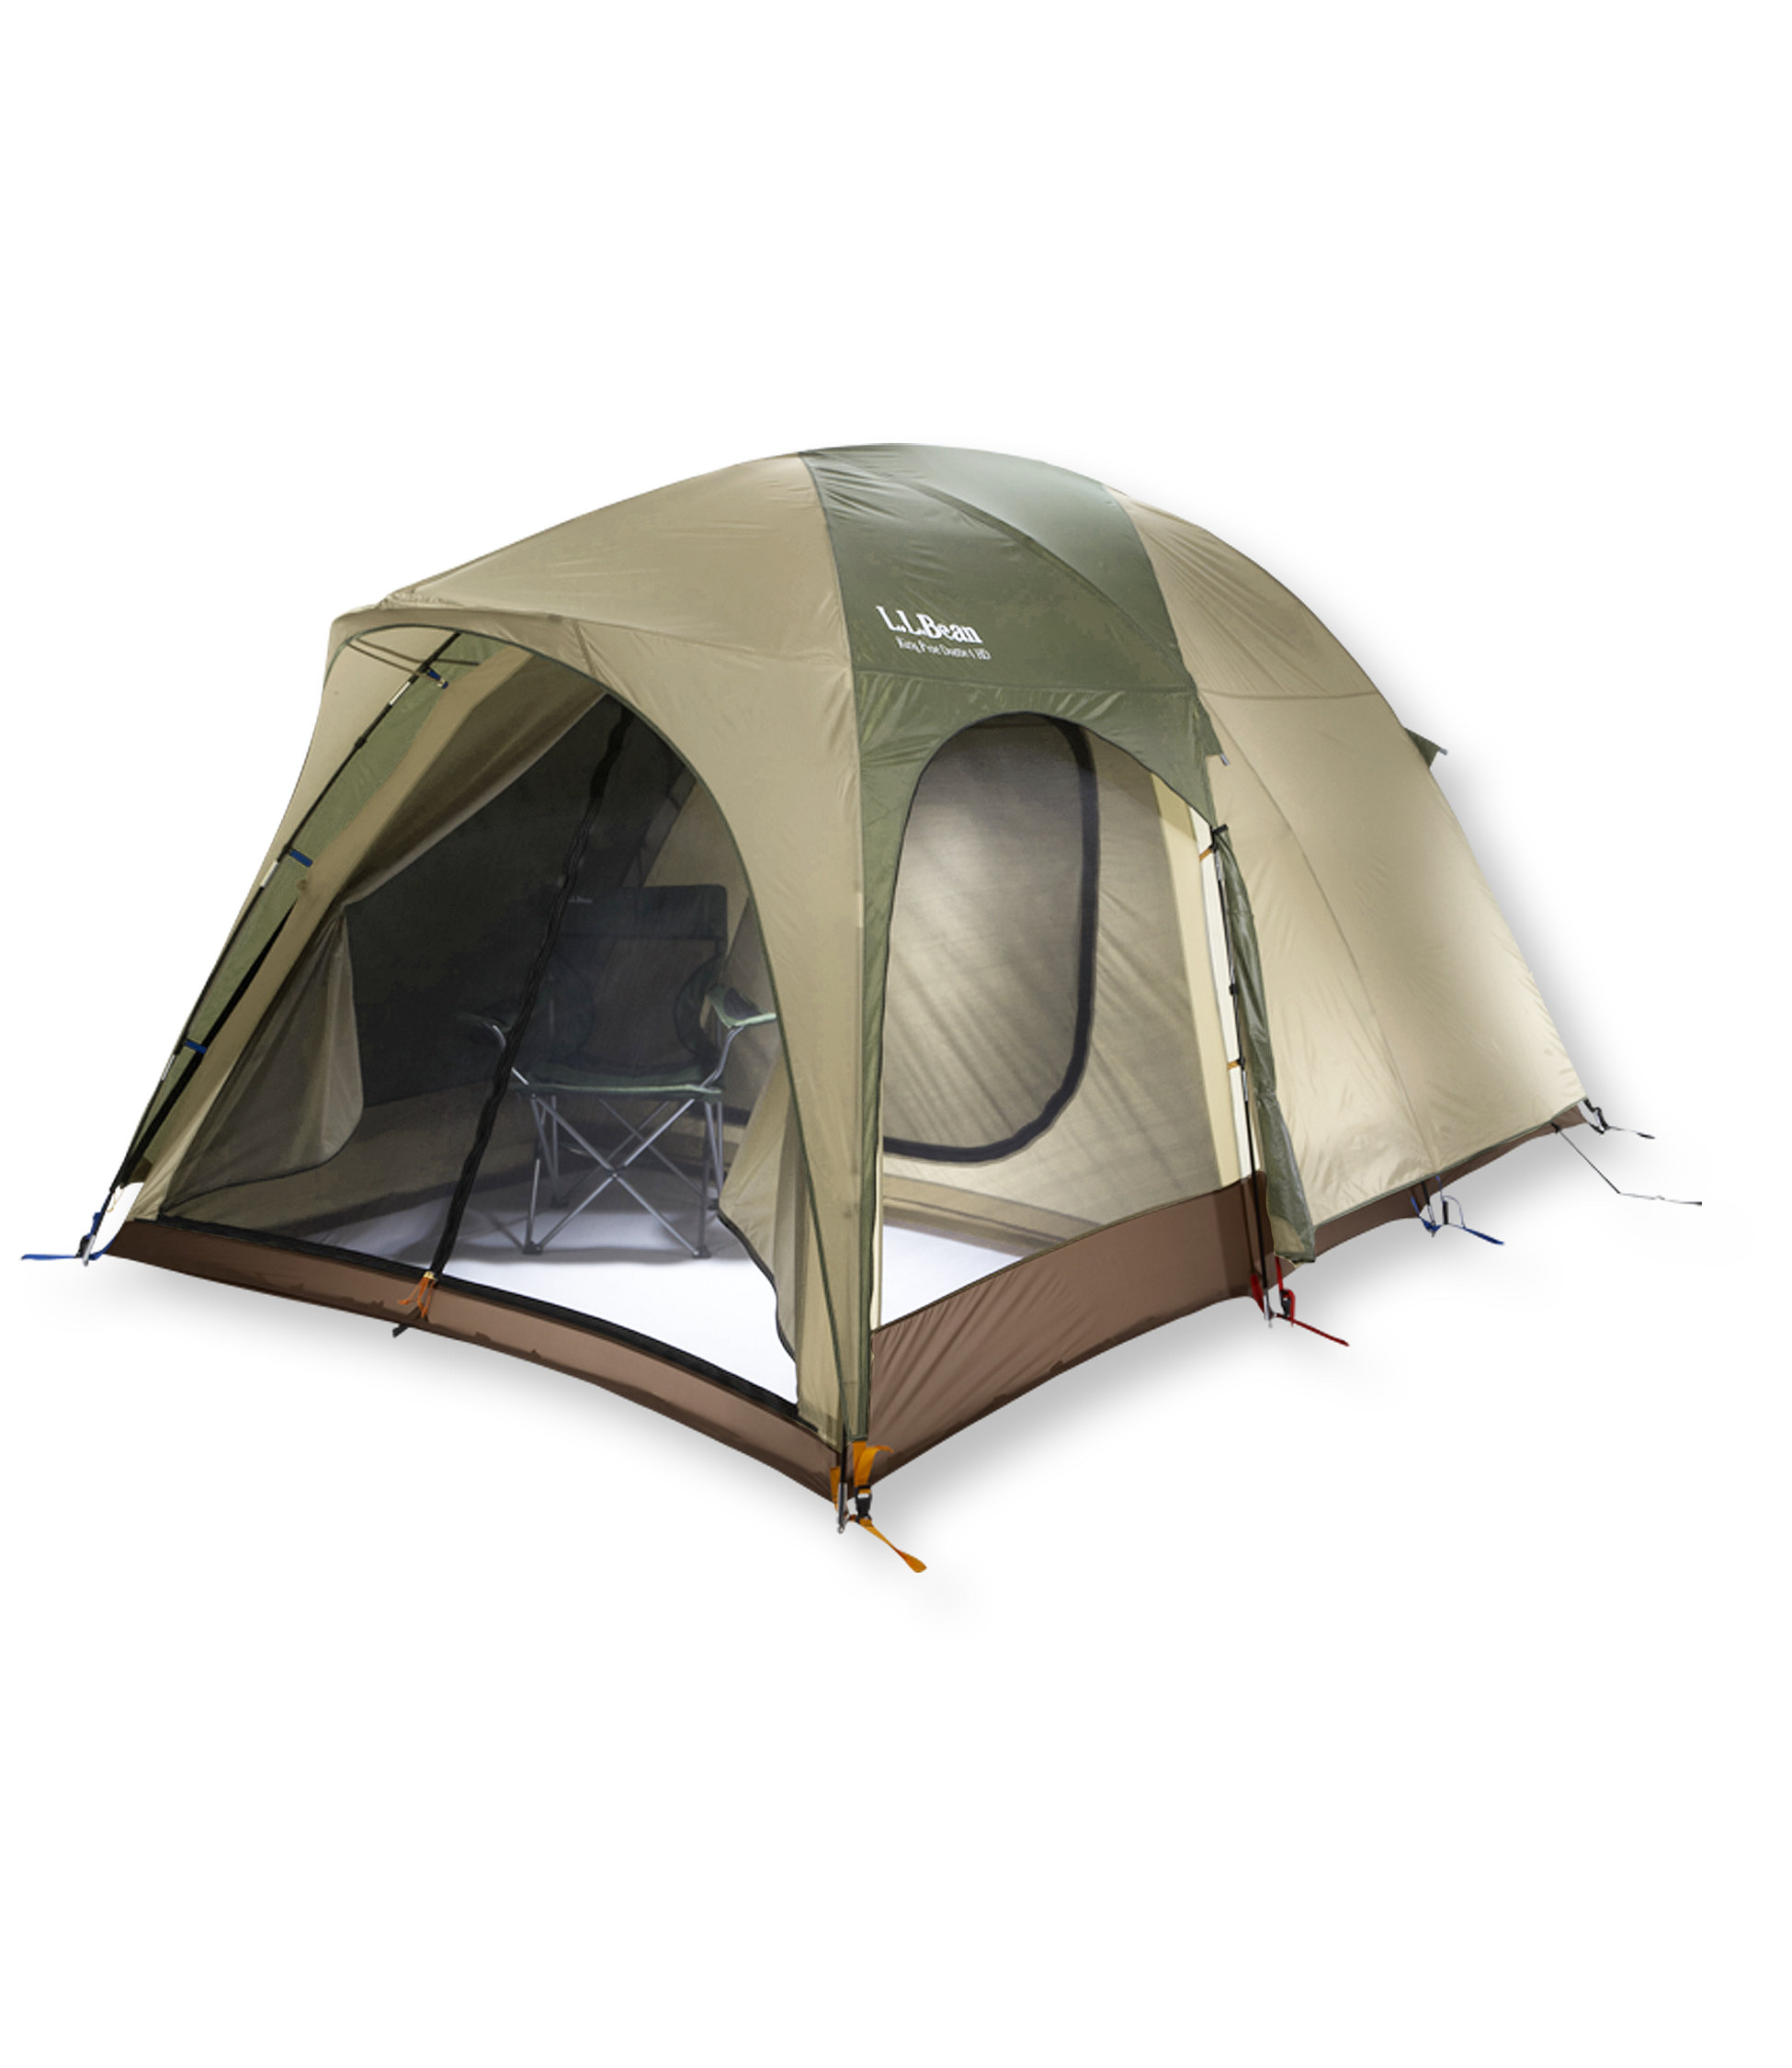 L.L.Bean King Pine HD 4-Person Dome